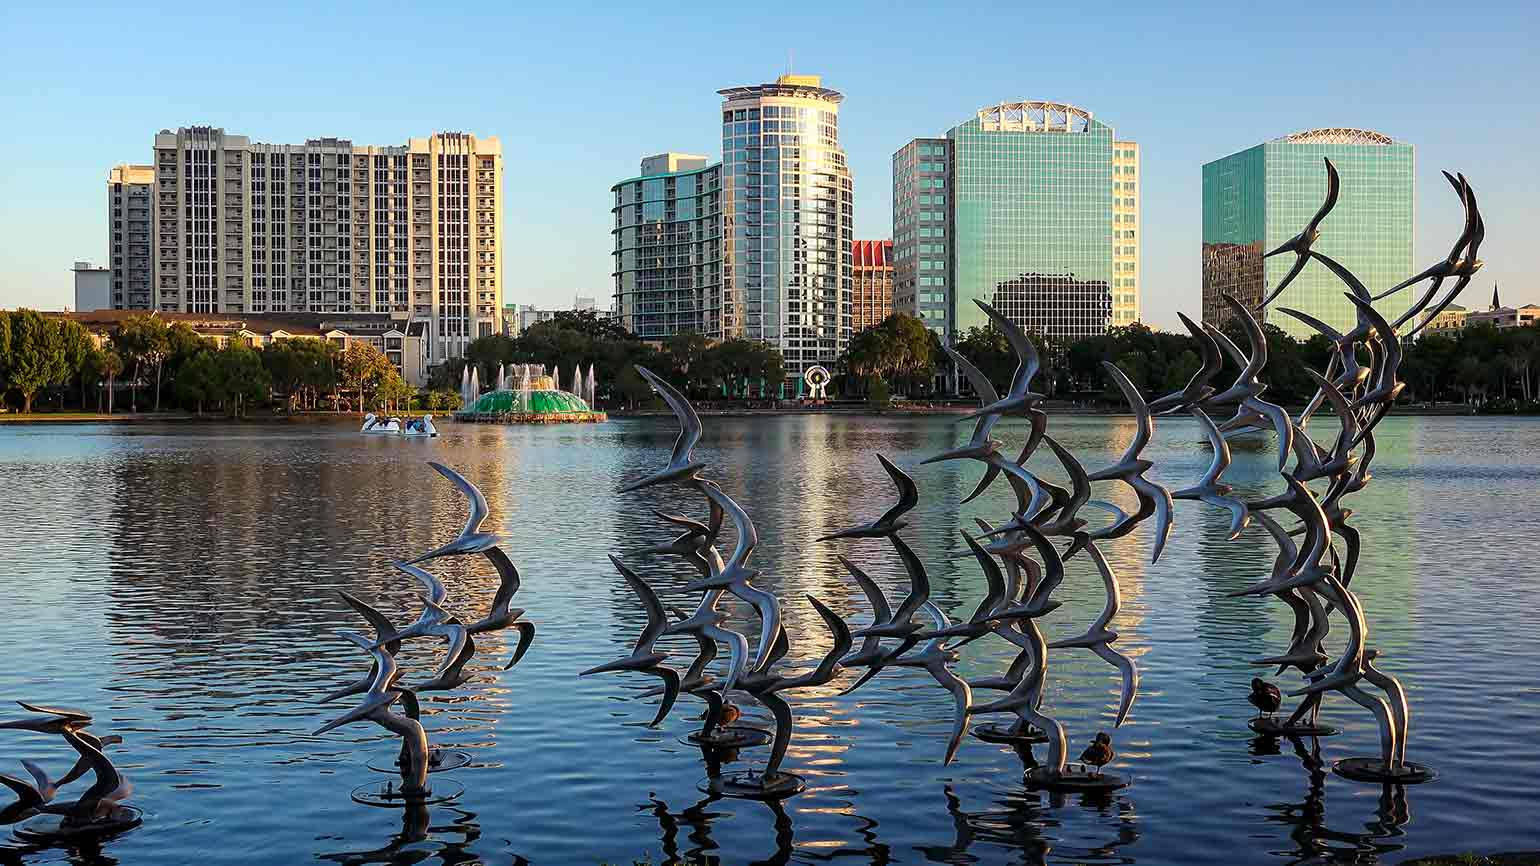 birds sculpture above water with city skyline